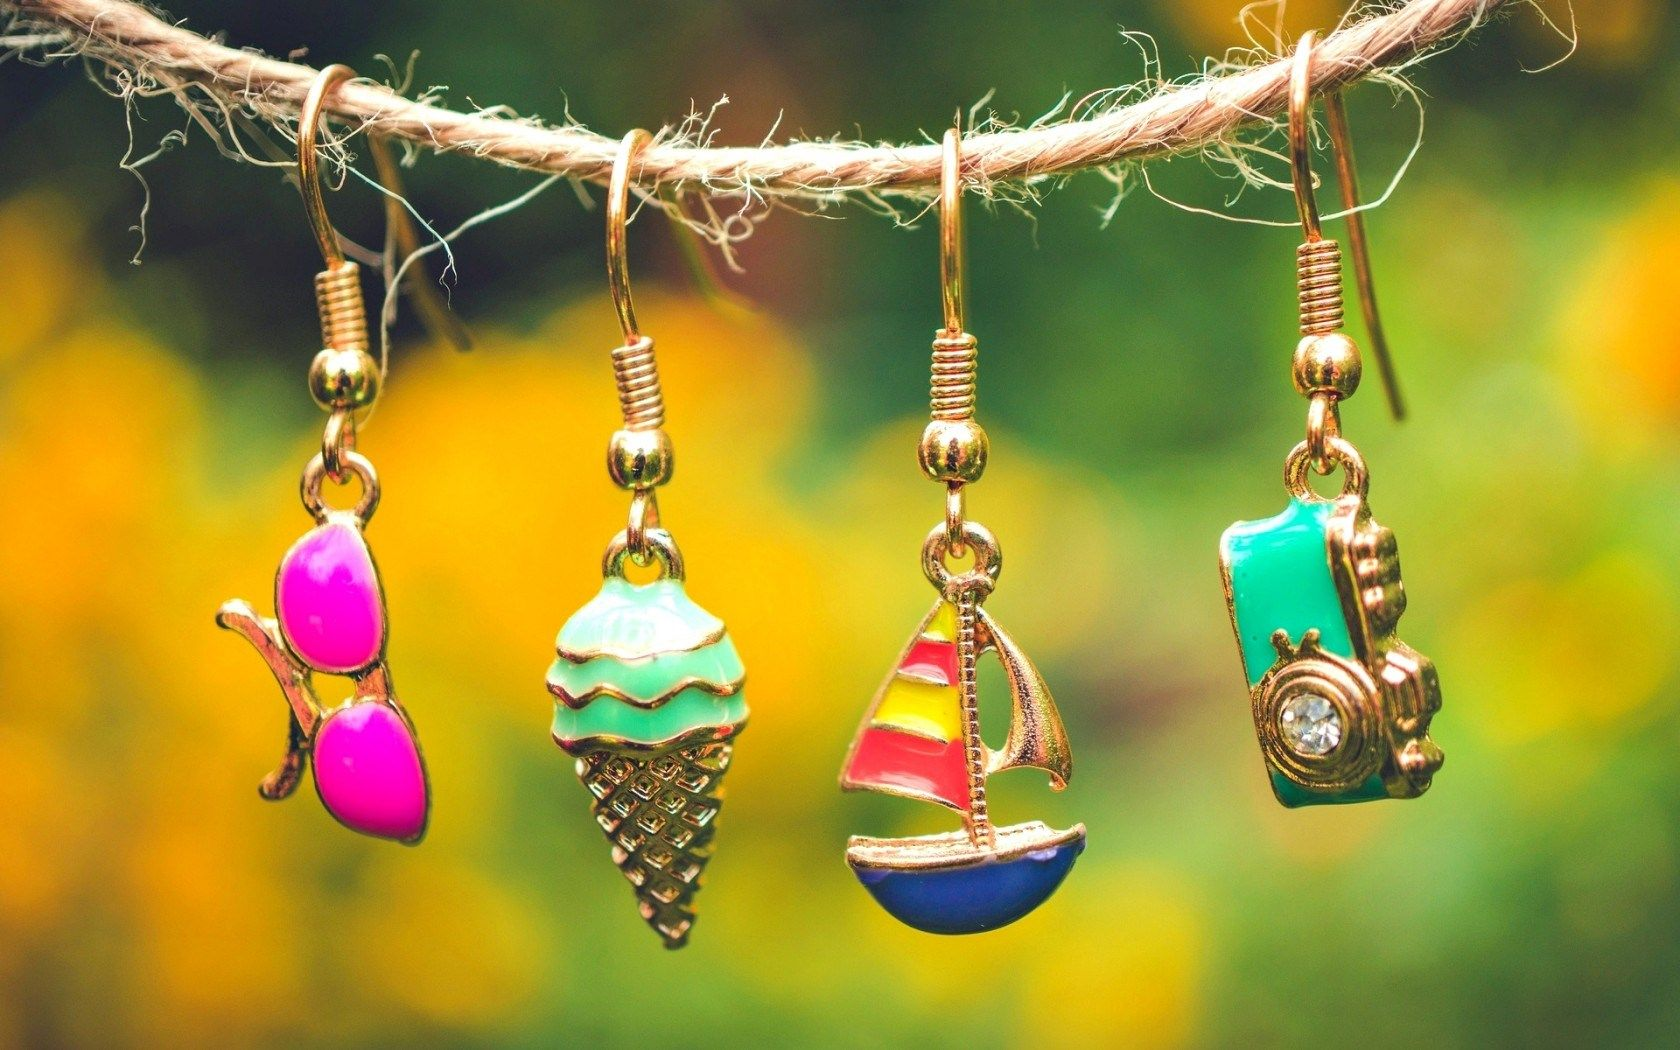 Colorful Earing Haging On Rope Photography Amazing Wallpapers HD Beautiful 1080p Desktop Free Background Latest Nice Images Picture